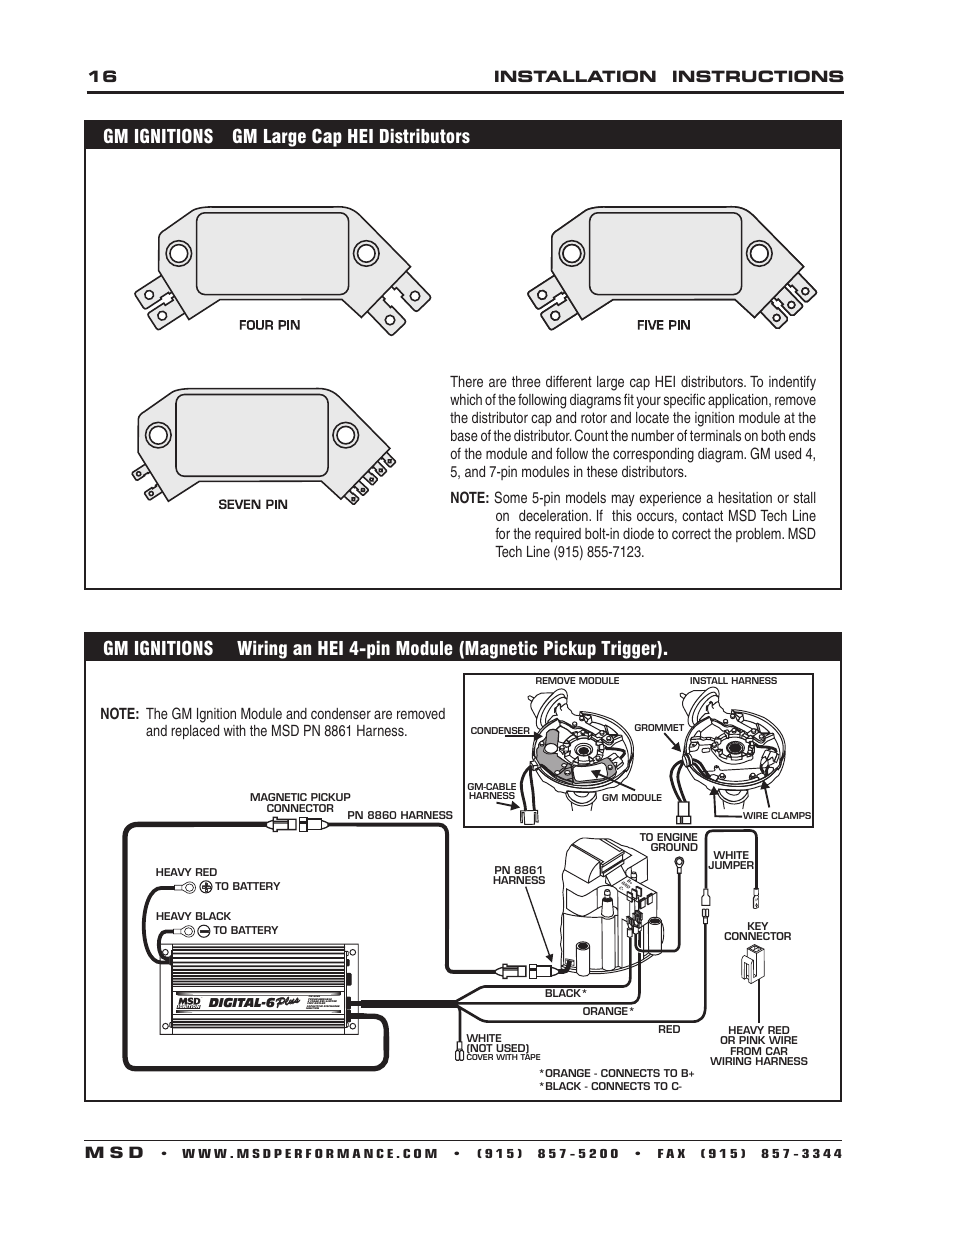 msd 6520 digital 6 plus ignition control installation page16 gm ignitions gm large cap hei distributors, 16 installation msd hei wiring diagram at fashall.co